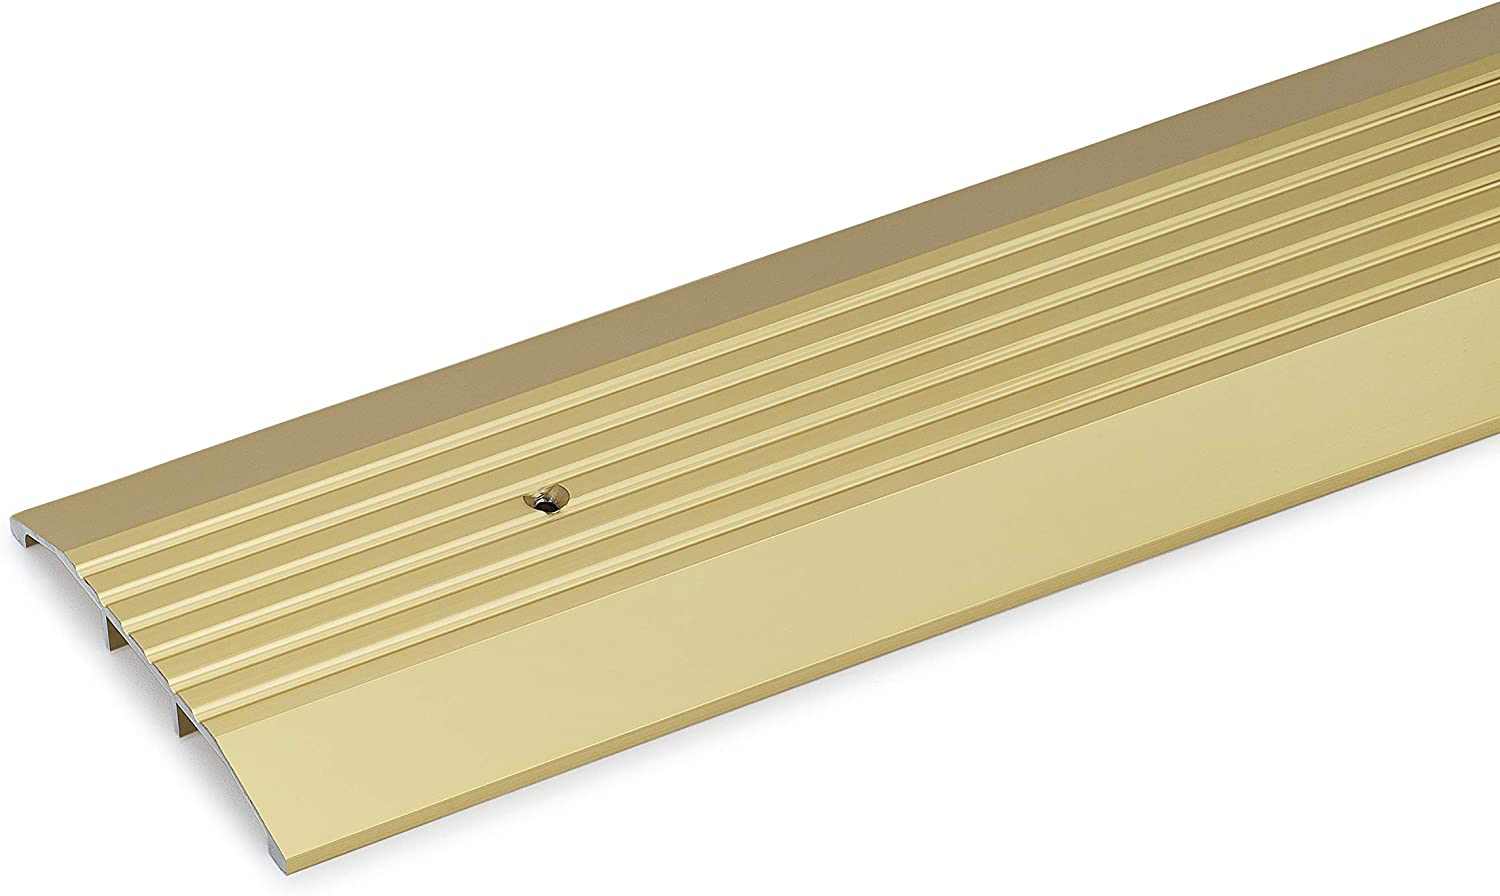 5 Wide x 1//2 High Gold Anodized Aluminum Threshold 36 Long 3 FT